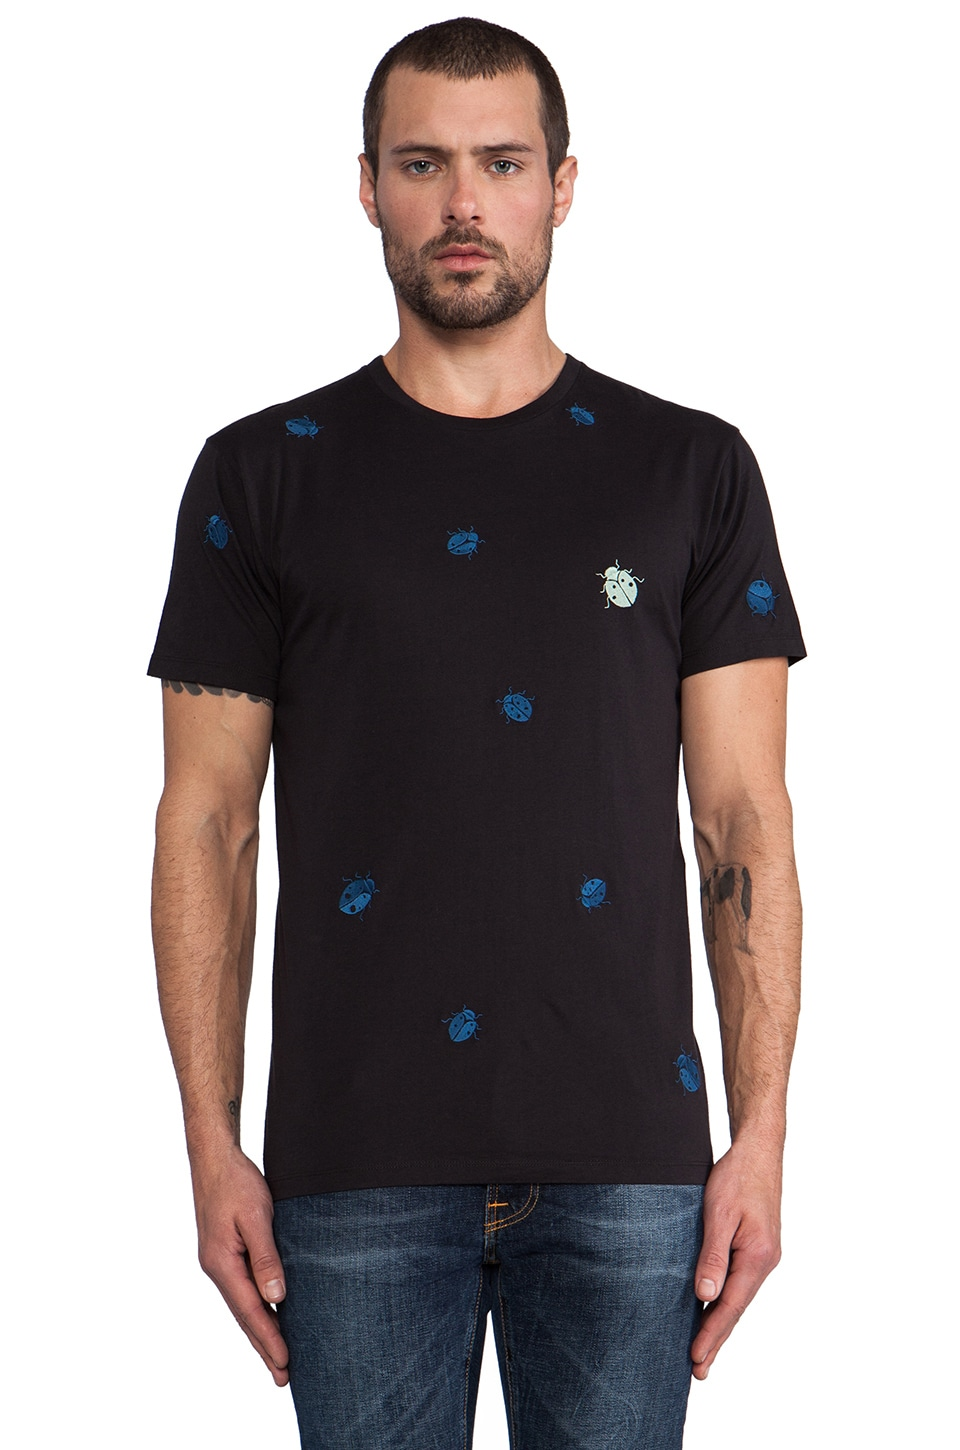 Marc by Marc Jacobs Ladybug Tee in Moonless Night